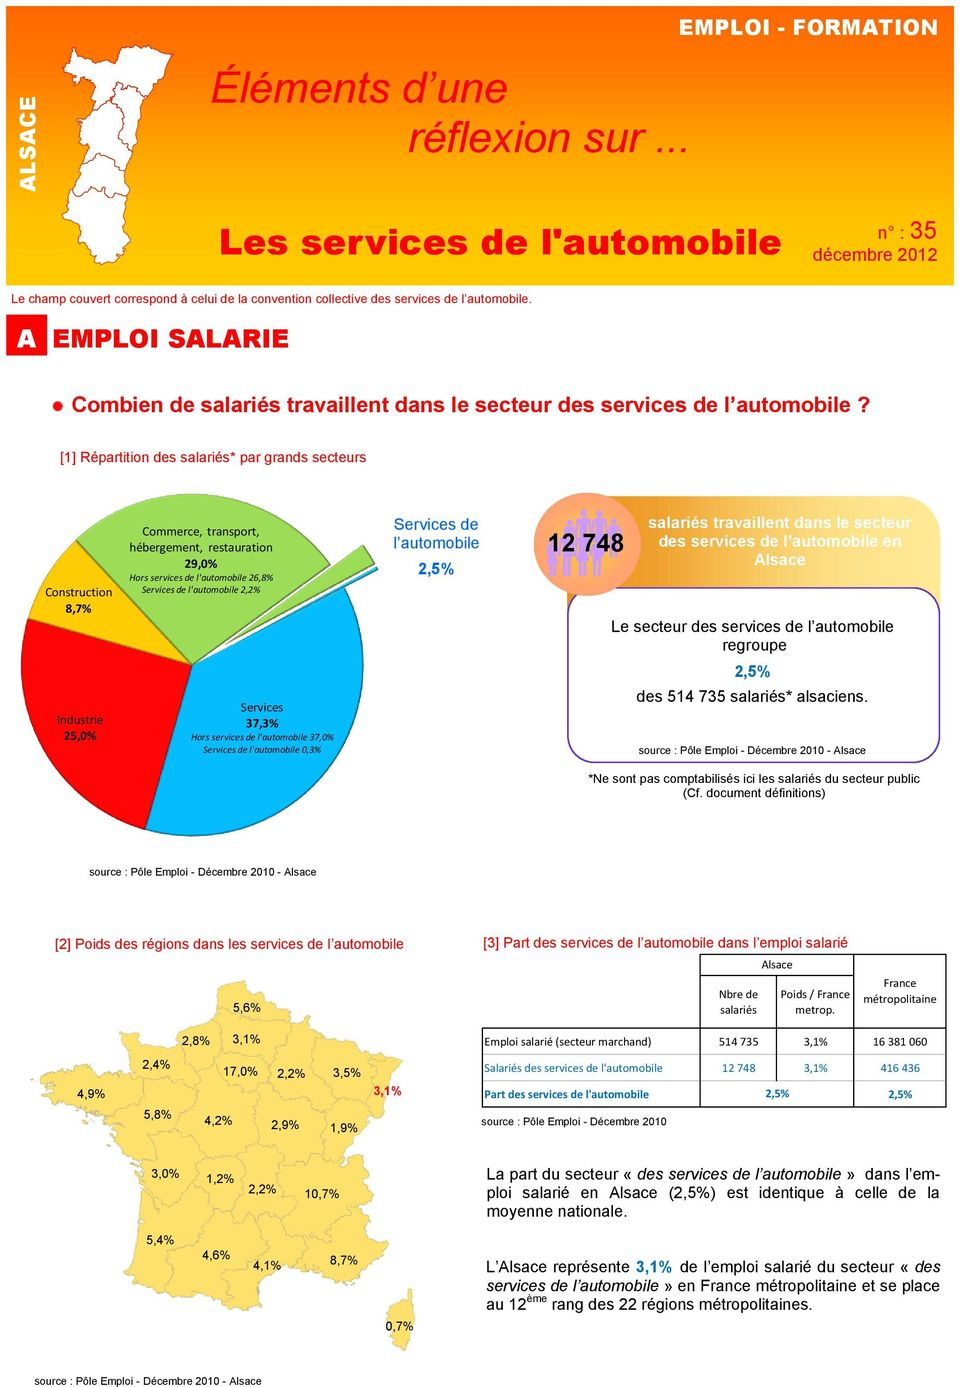 [1] Répartition des salariés* par grands secteurs Construction 8,7% Commerce, transport, hébergement, restauration 29,0% Hors services de l'automobile 26,8% Servicesde l'automobile 2,2% Services de l